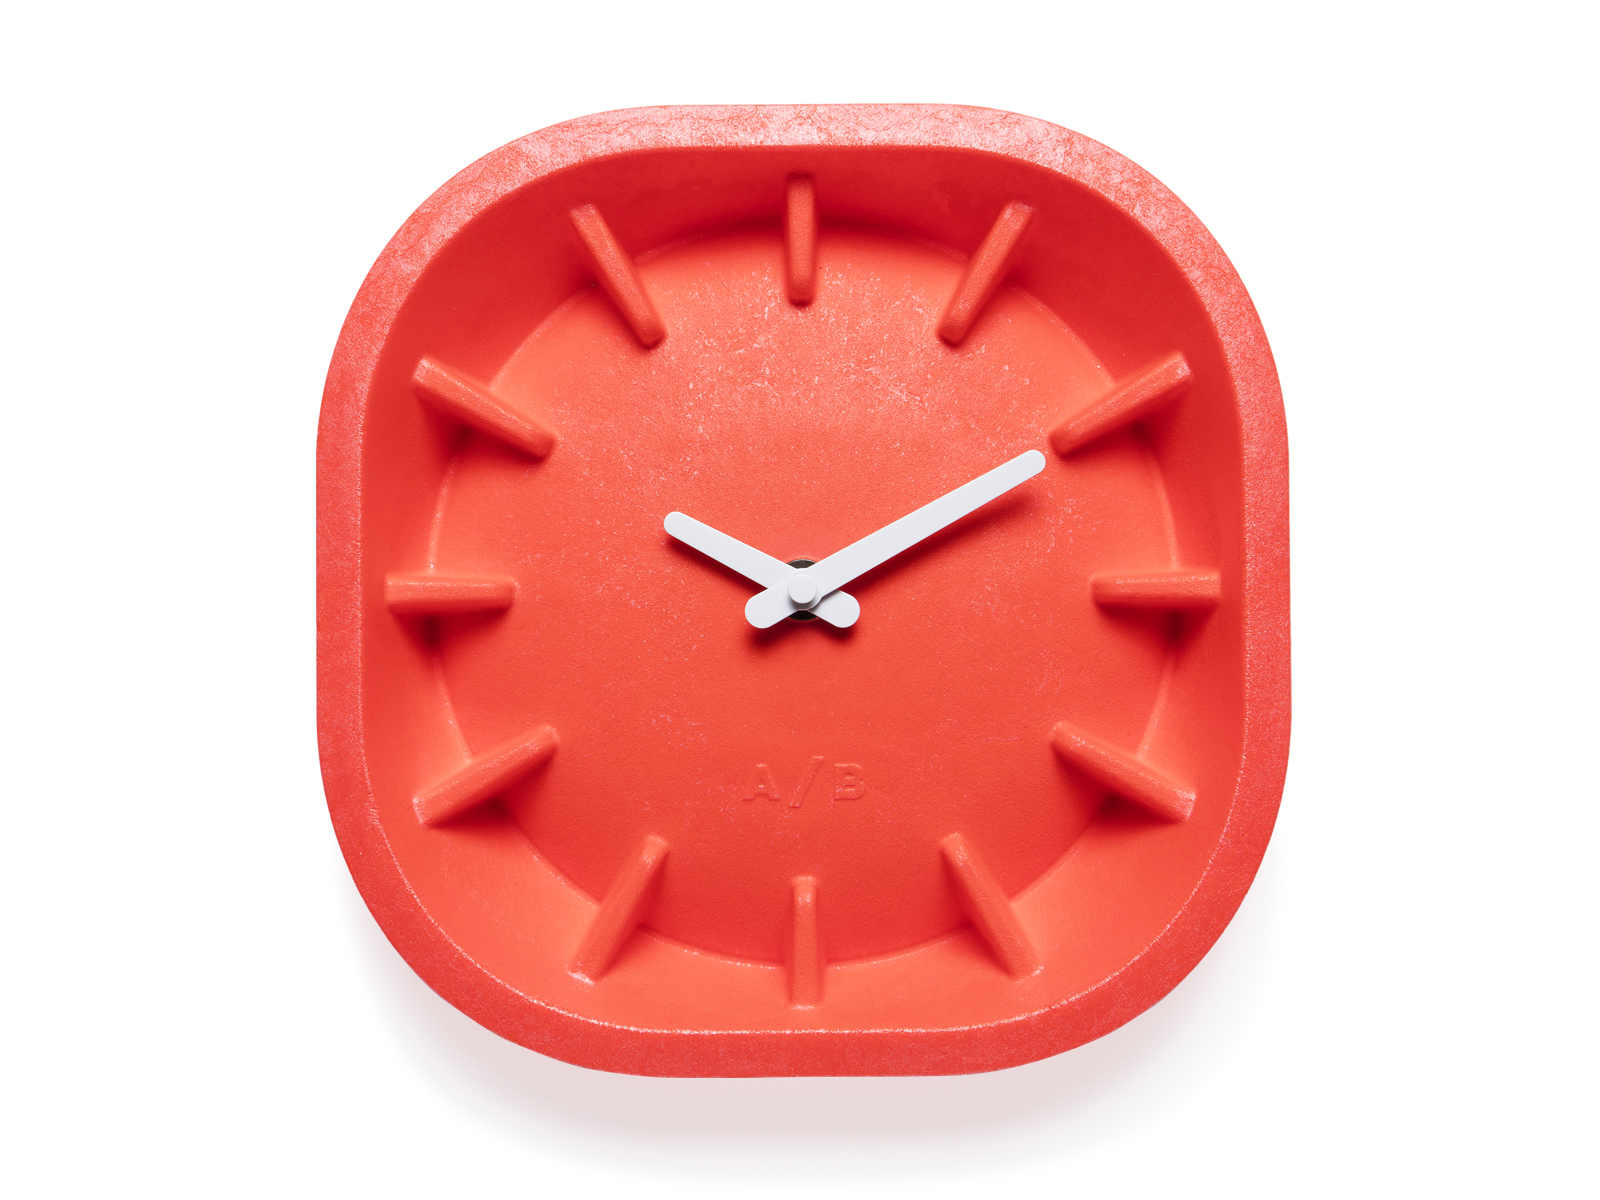 Anno, Benk, Design, klok, clock, paper clock, grey, red, coral, stone, binnenwerk, winkel, interieur, Leeuwarden, merk, design, candle holder, kandelaar, trivet, fornuis, kaarsenhouder, desk organizer, kurk, cork, table, island, casted, pink, grey, natural